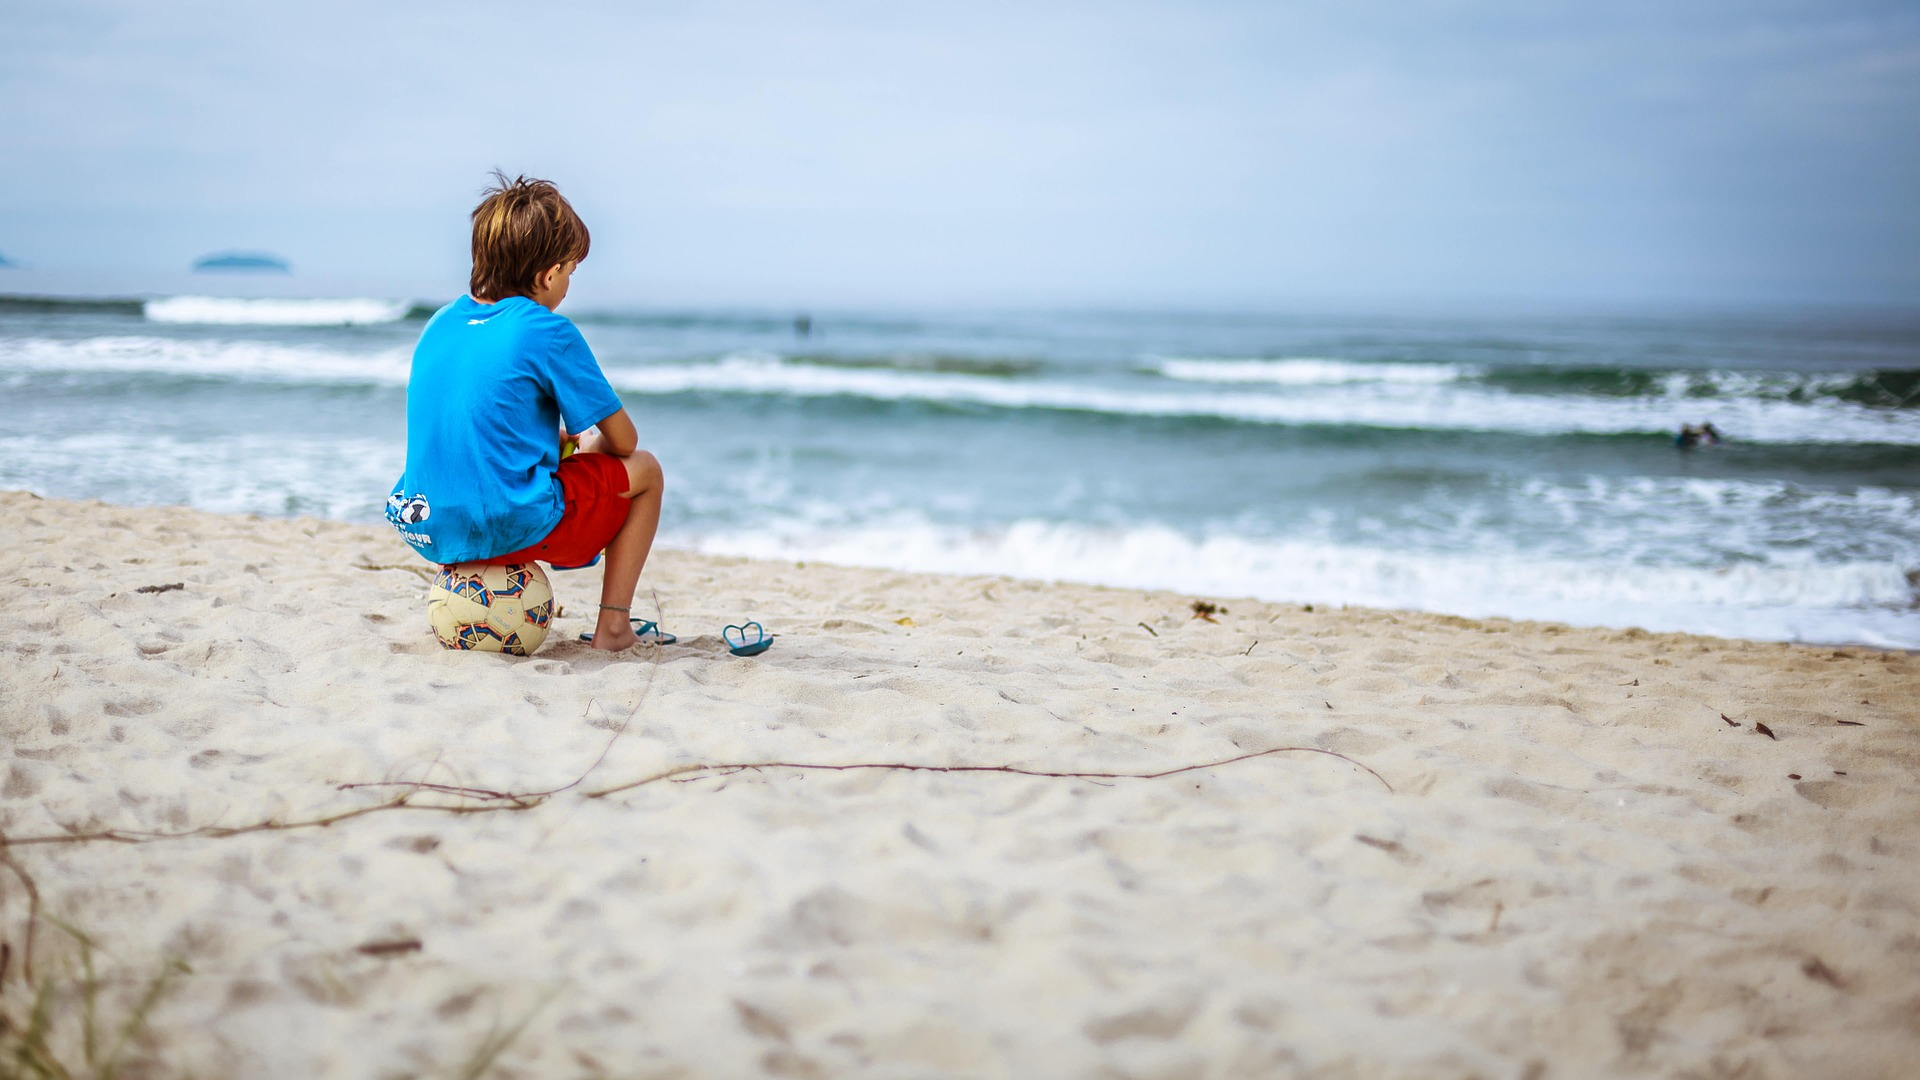 A Child and Mindfulness